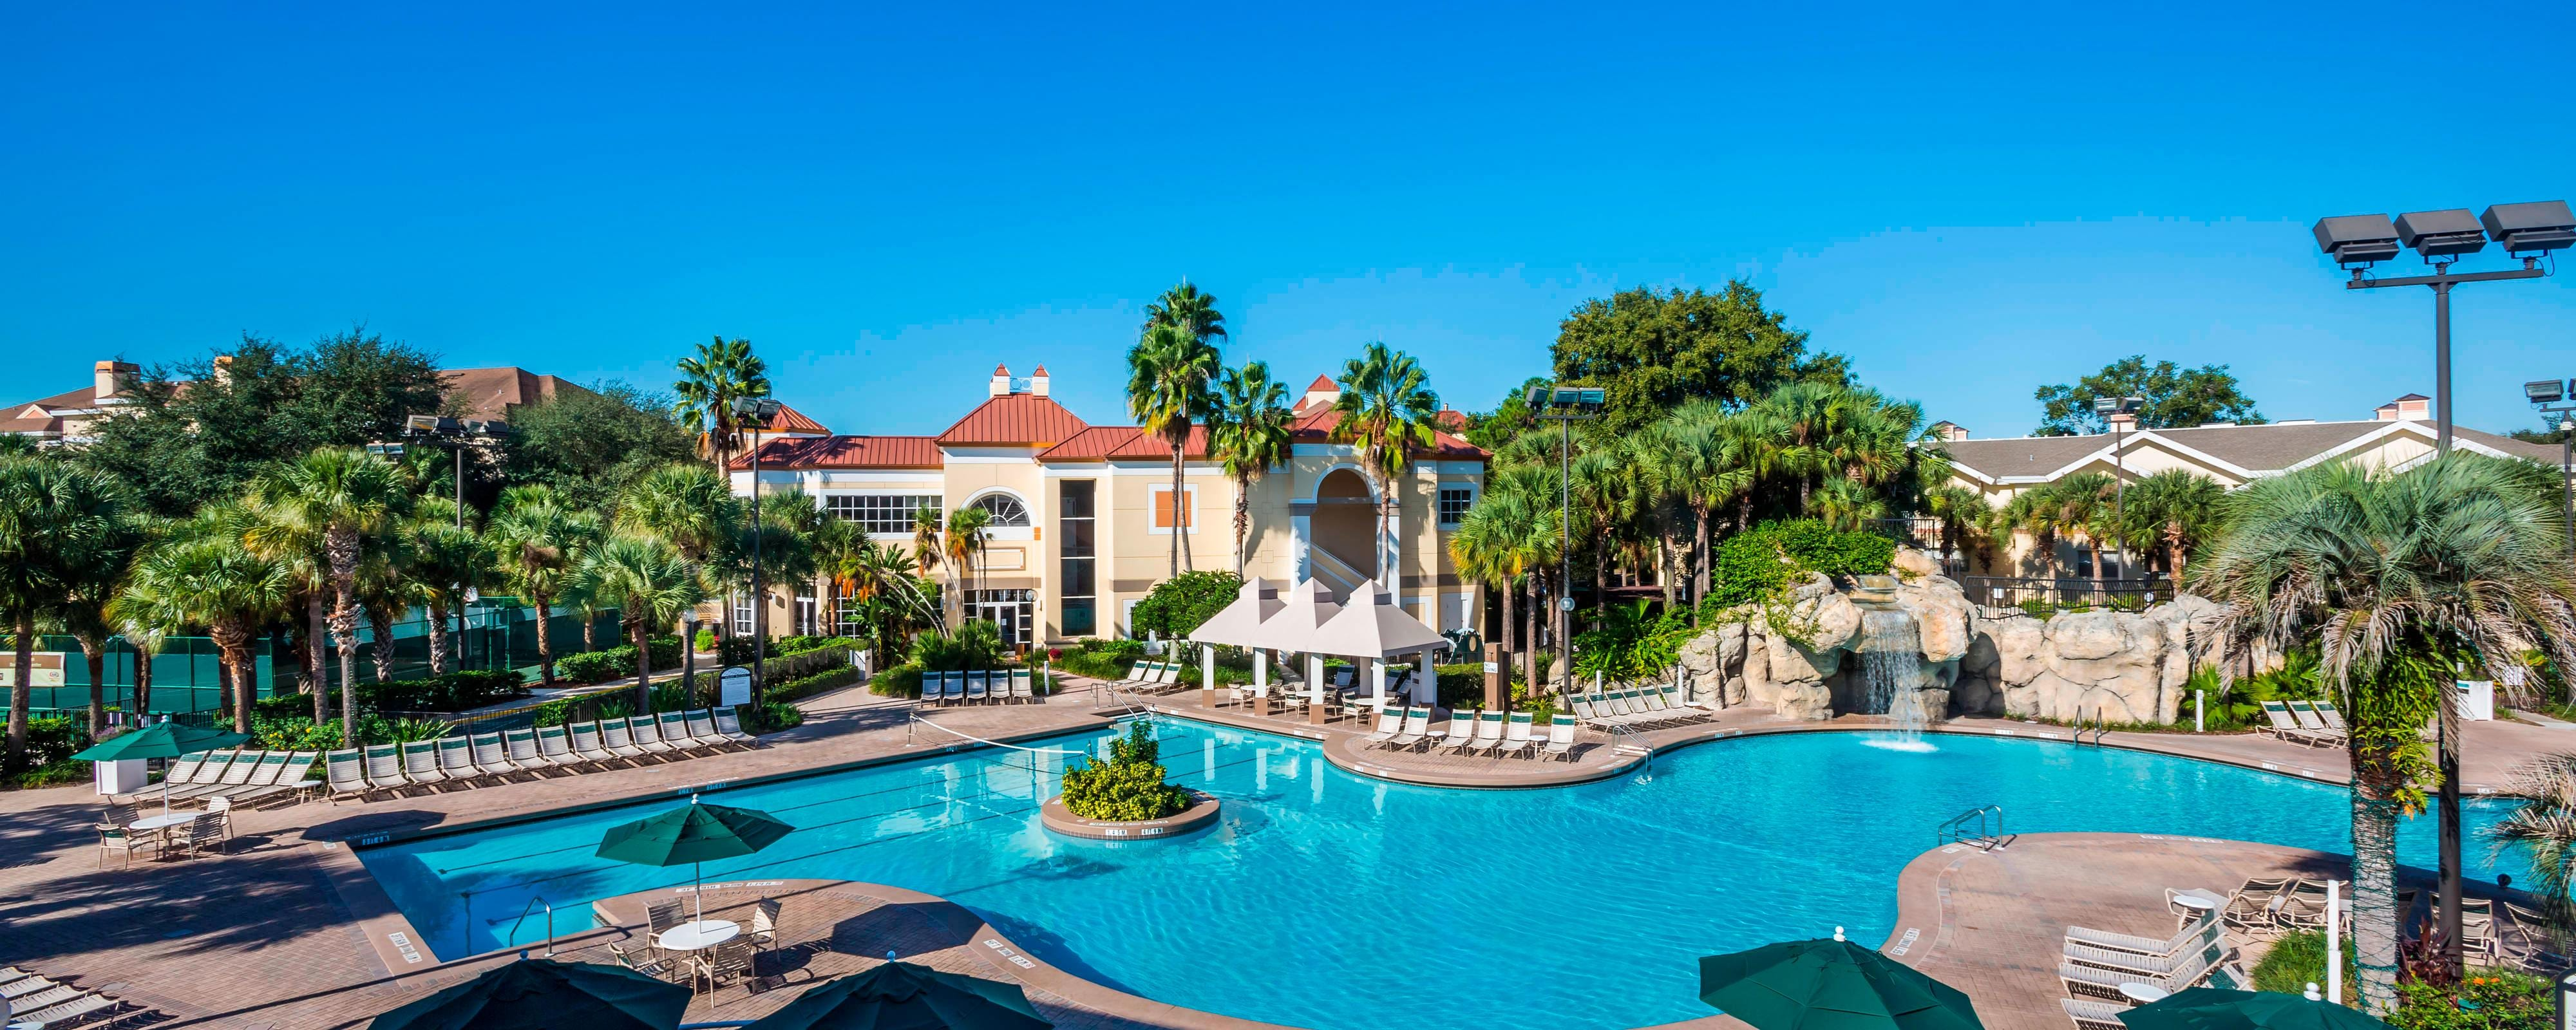 Family Resort in Orlando  Sheraton Vistana Resort Villas